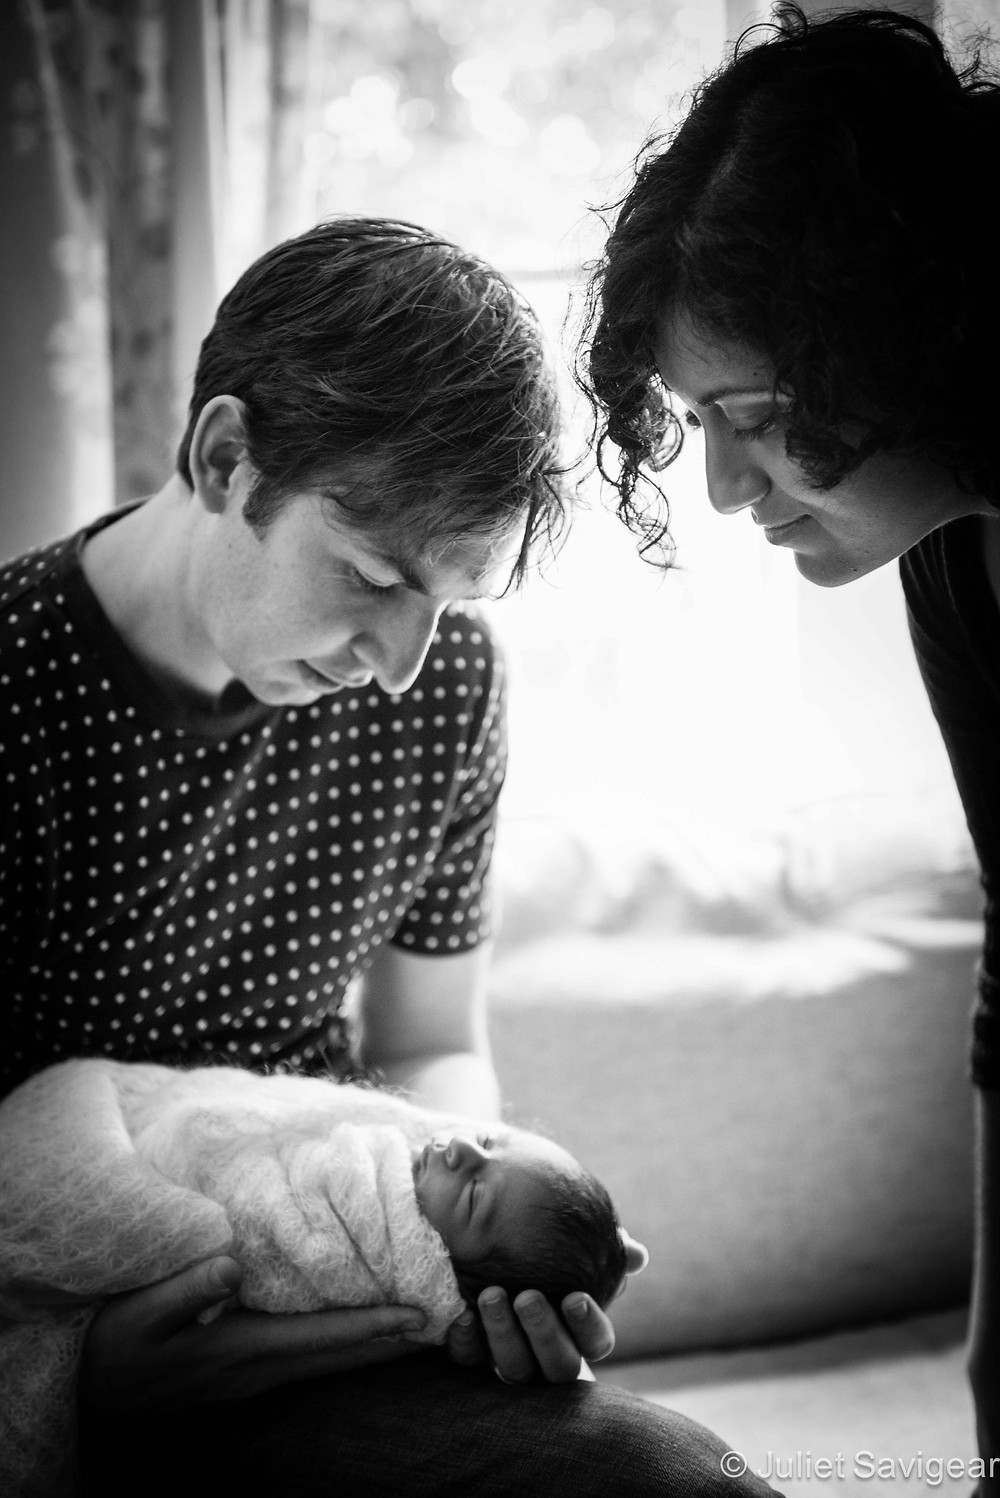 Our New Baby - Newborn Baby & Family Photography, Brixton